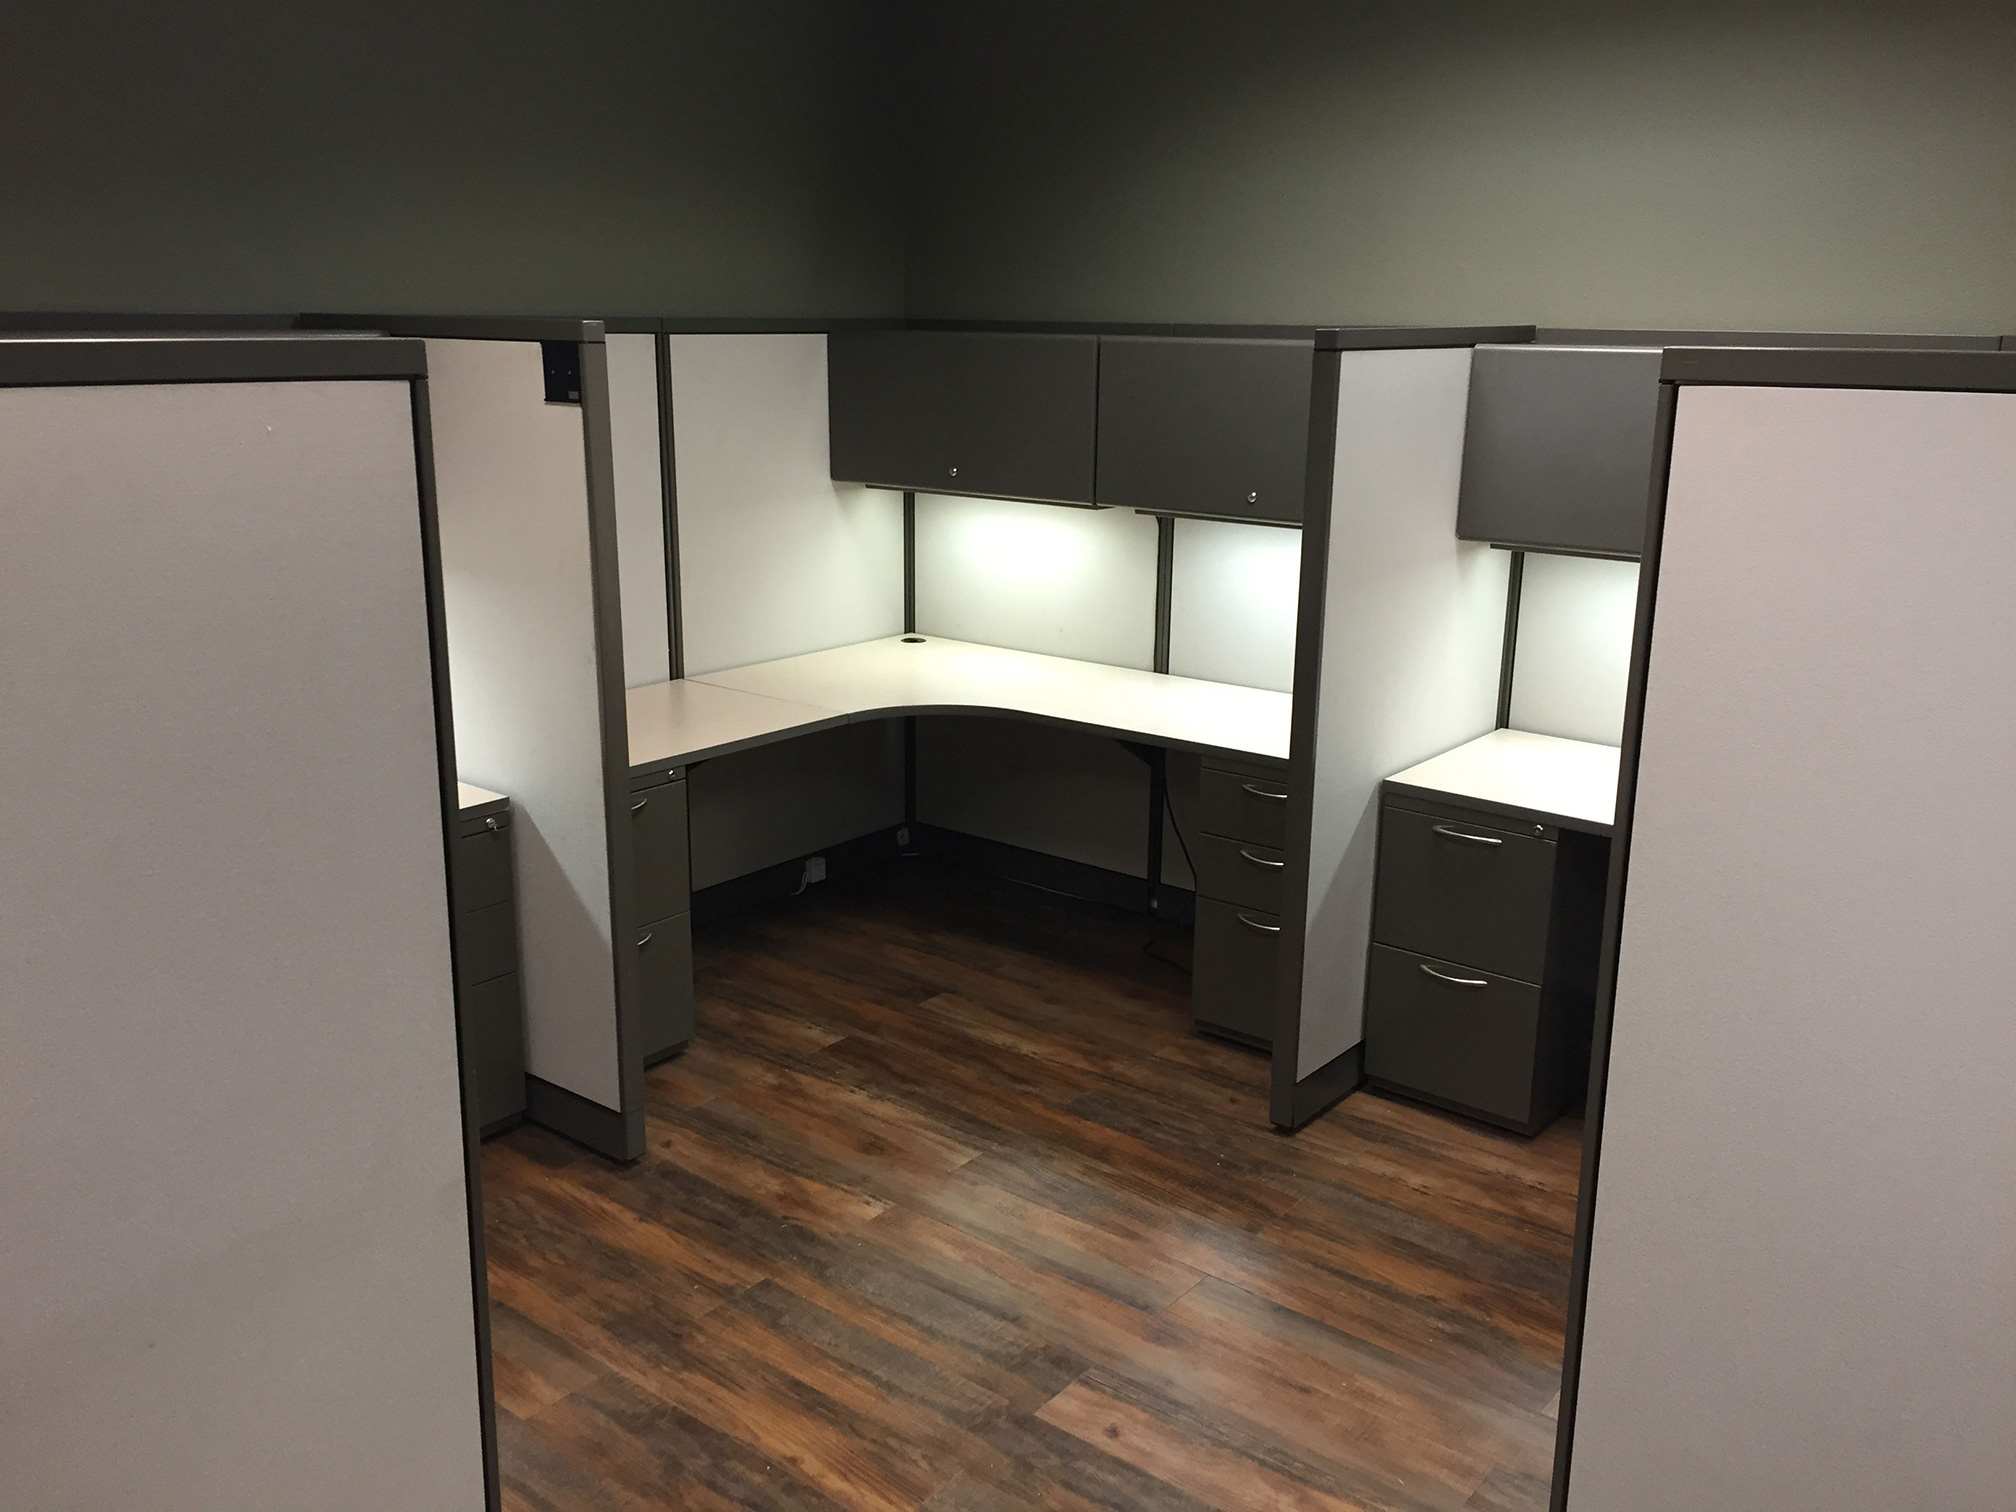 office-cubicles-for-sale-in-sanford-florida-3.jpg